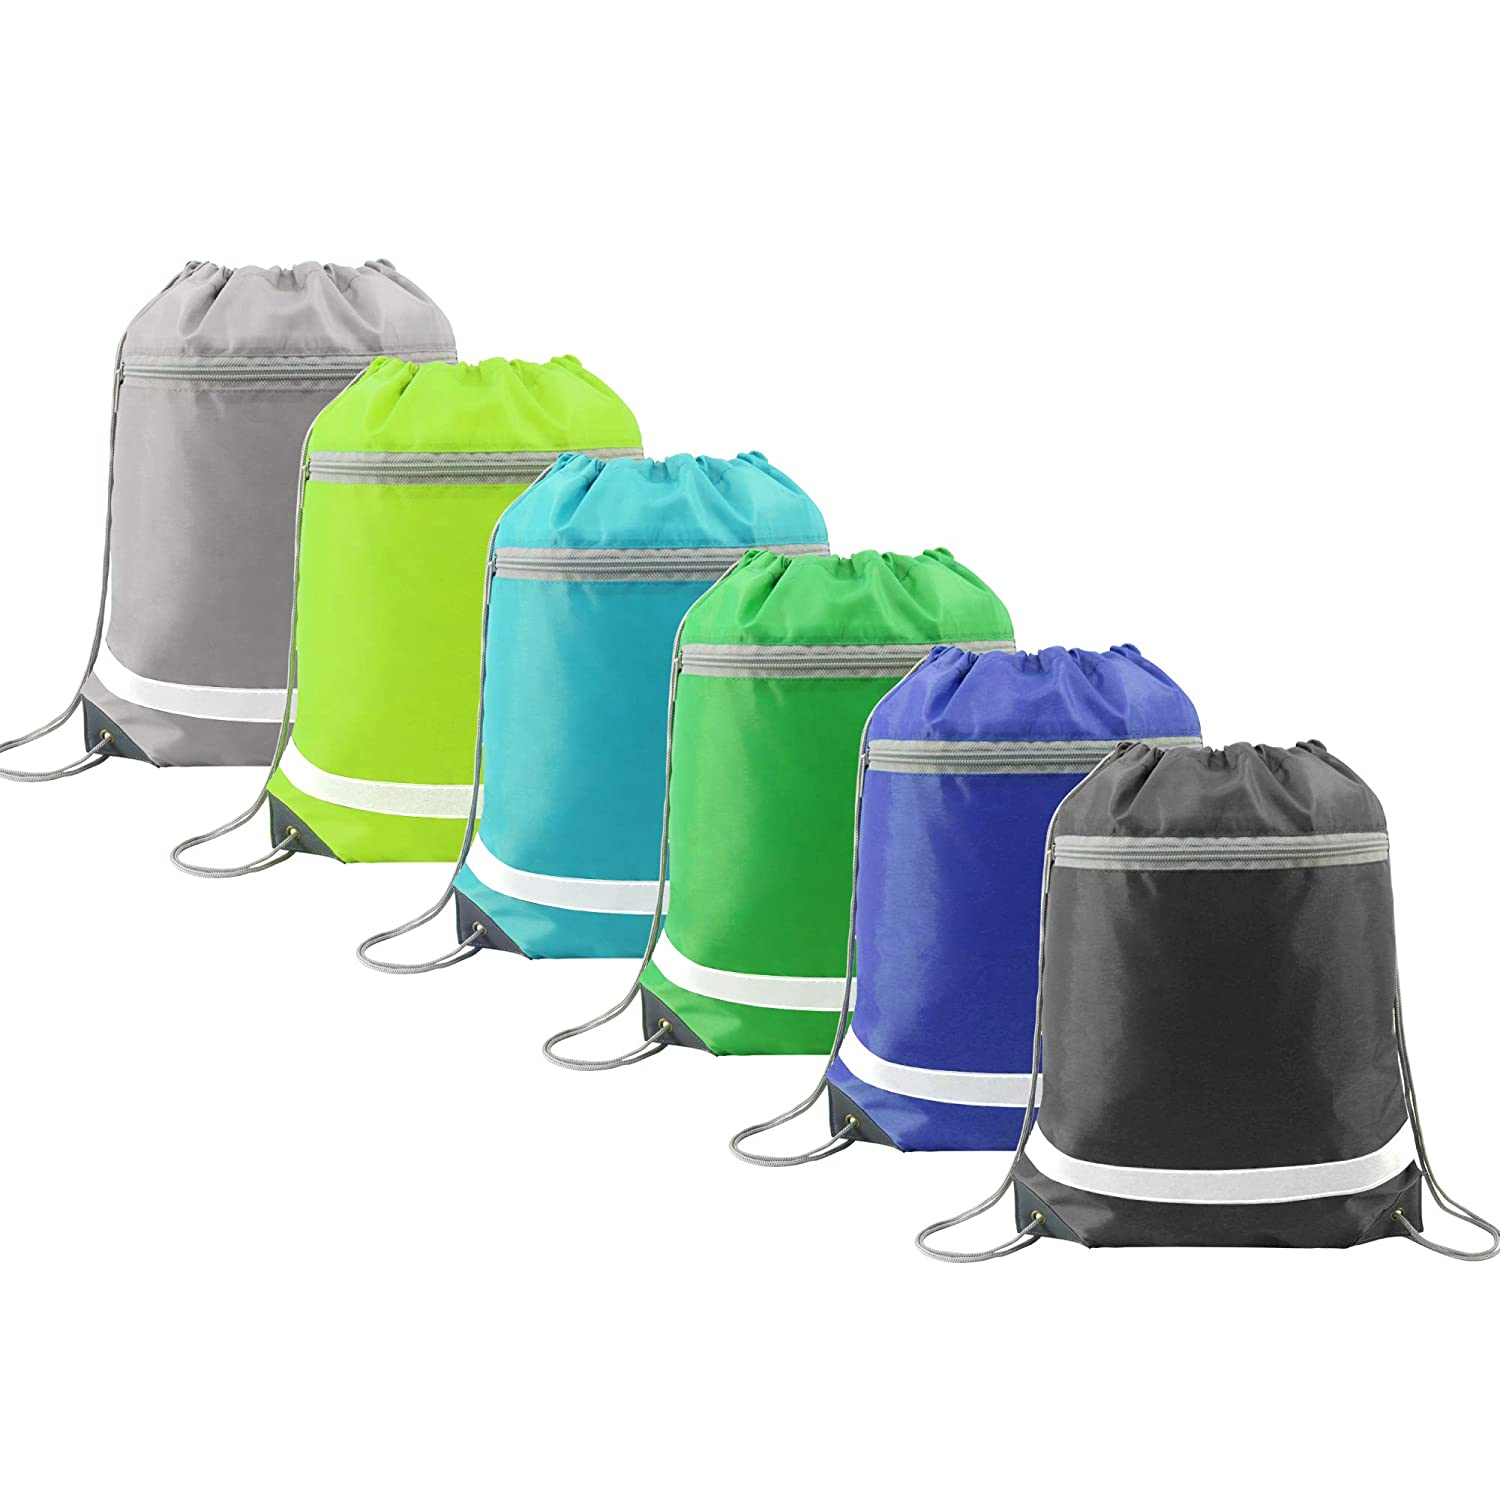 Amazon.com   Drawstring Backpack Bags Bulk with Pocket, Cheap Gym Sacks  Reflective Cinch Bags Sackpack 6 Pack   Drawstring Bags 44a166fae8